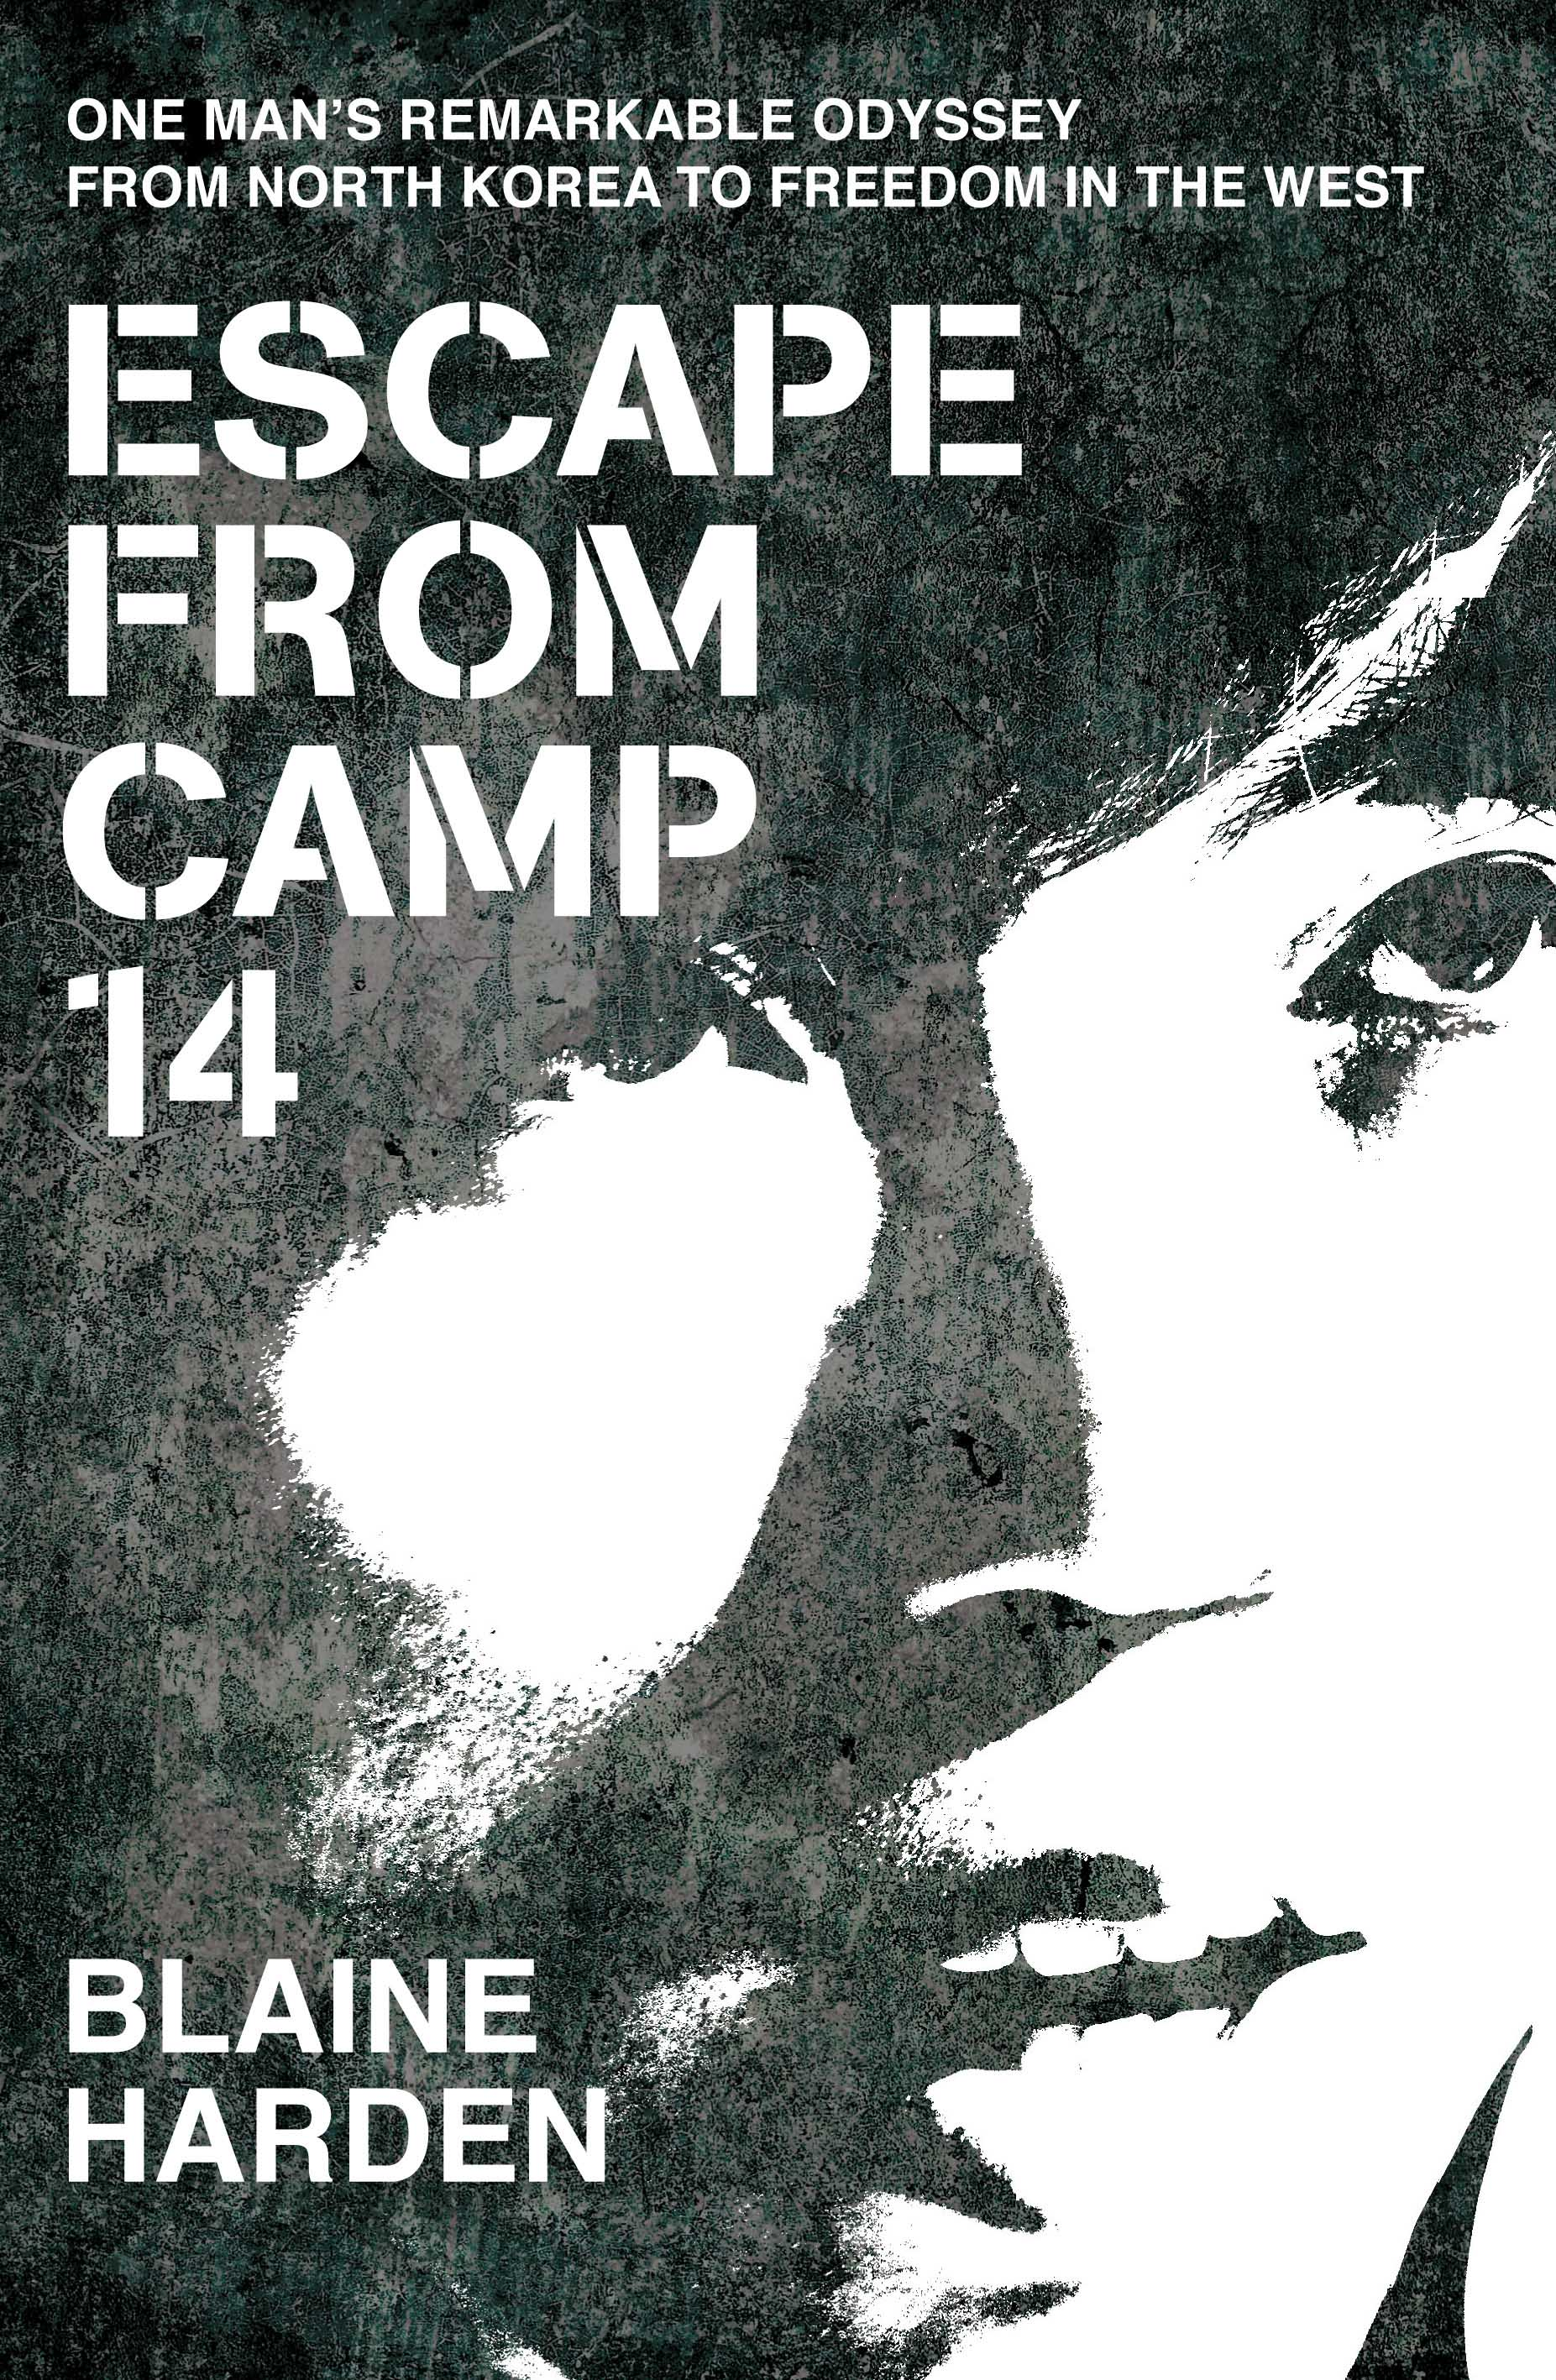 Escape from Camp 14: One Man's Remarkable Odyssey from North Korea to Freedom in